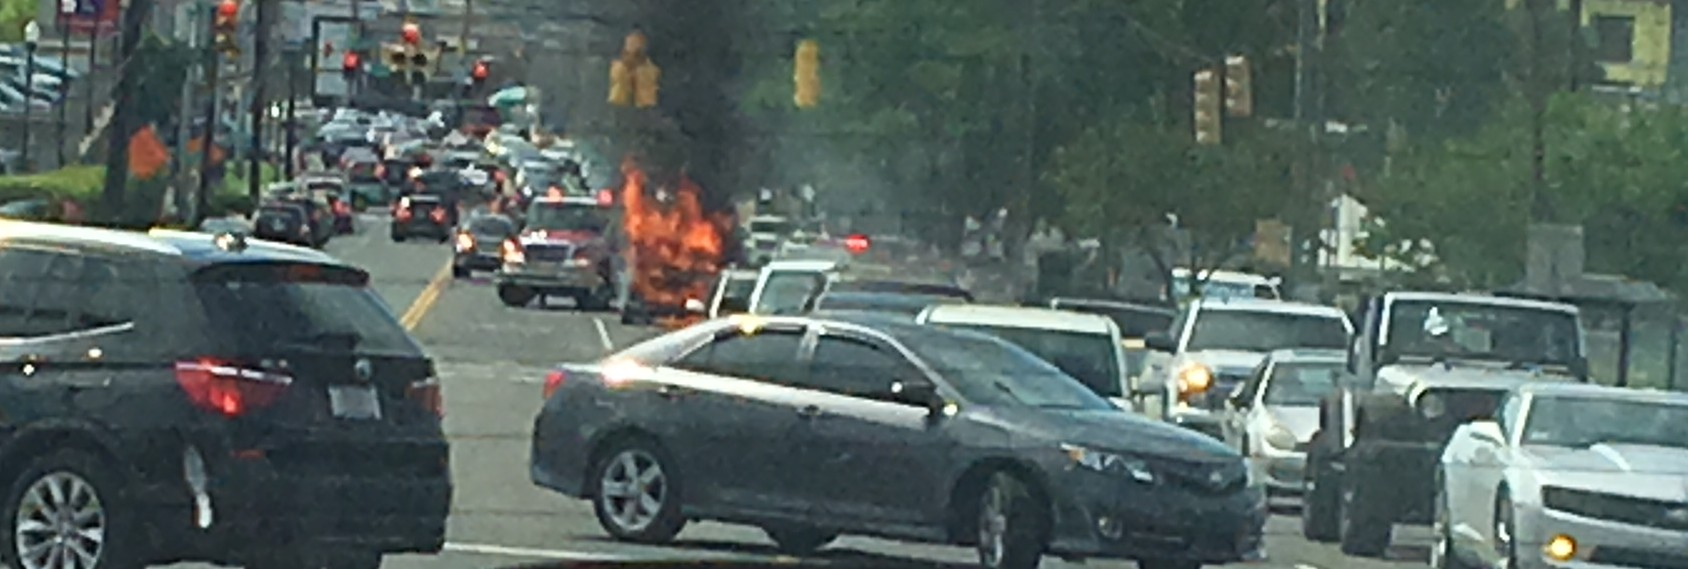 On Monday, May 8, a van in front of Hillsboro High School on Hillsboro Road ignited around 3 pm. Firefighters were quickly on the scene and extinguished the blaze without incident.